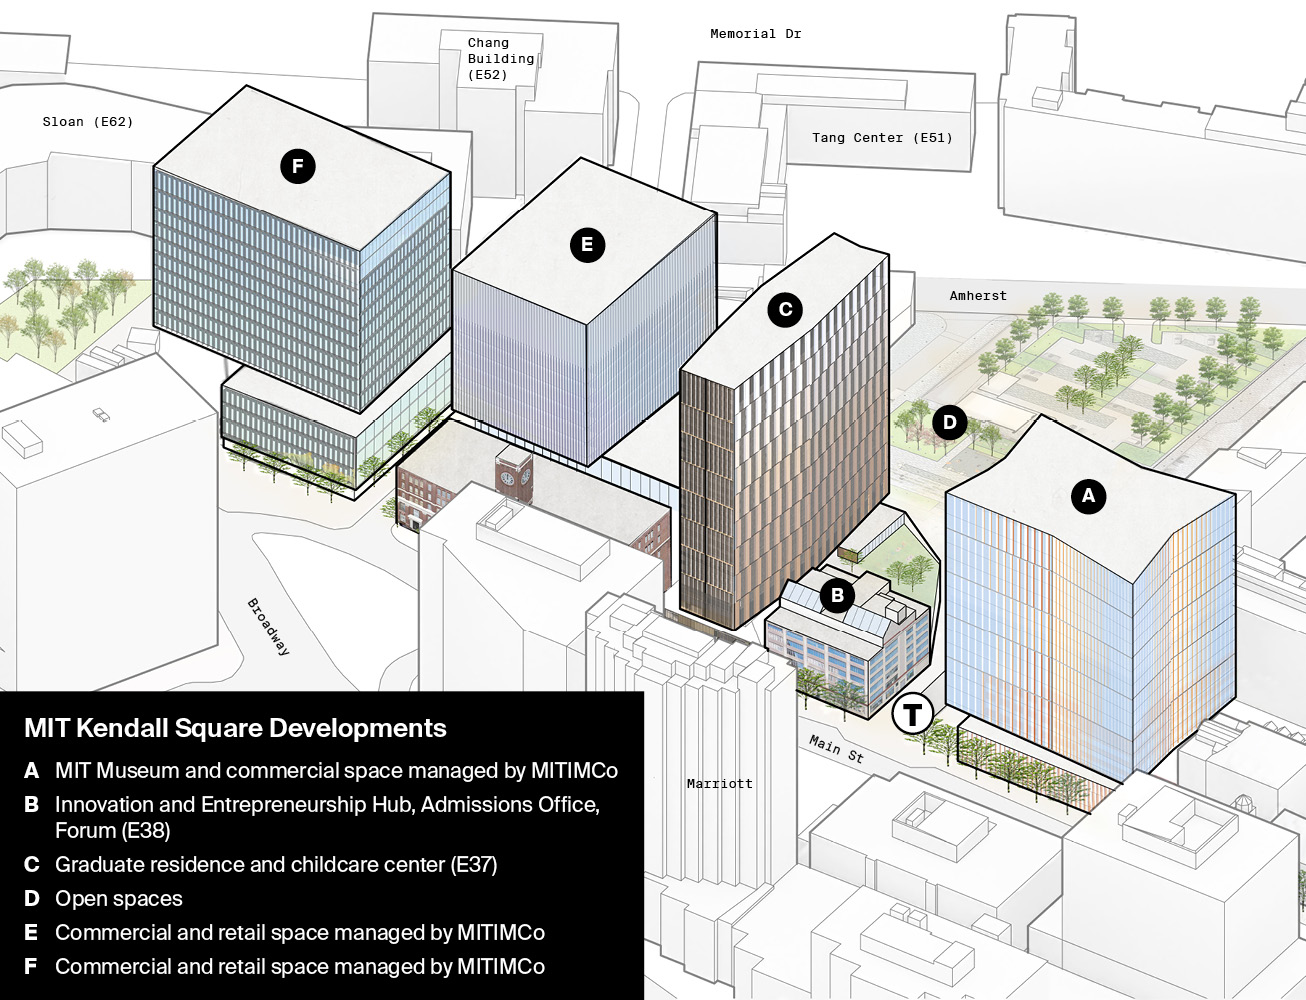 Map illustrating new building locations in Kendall Square